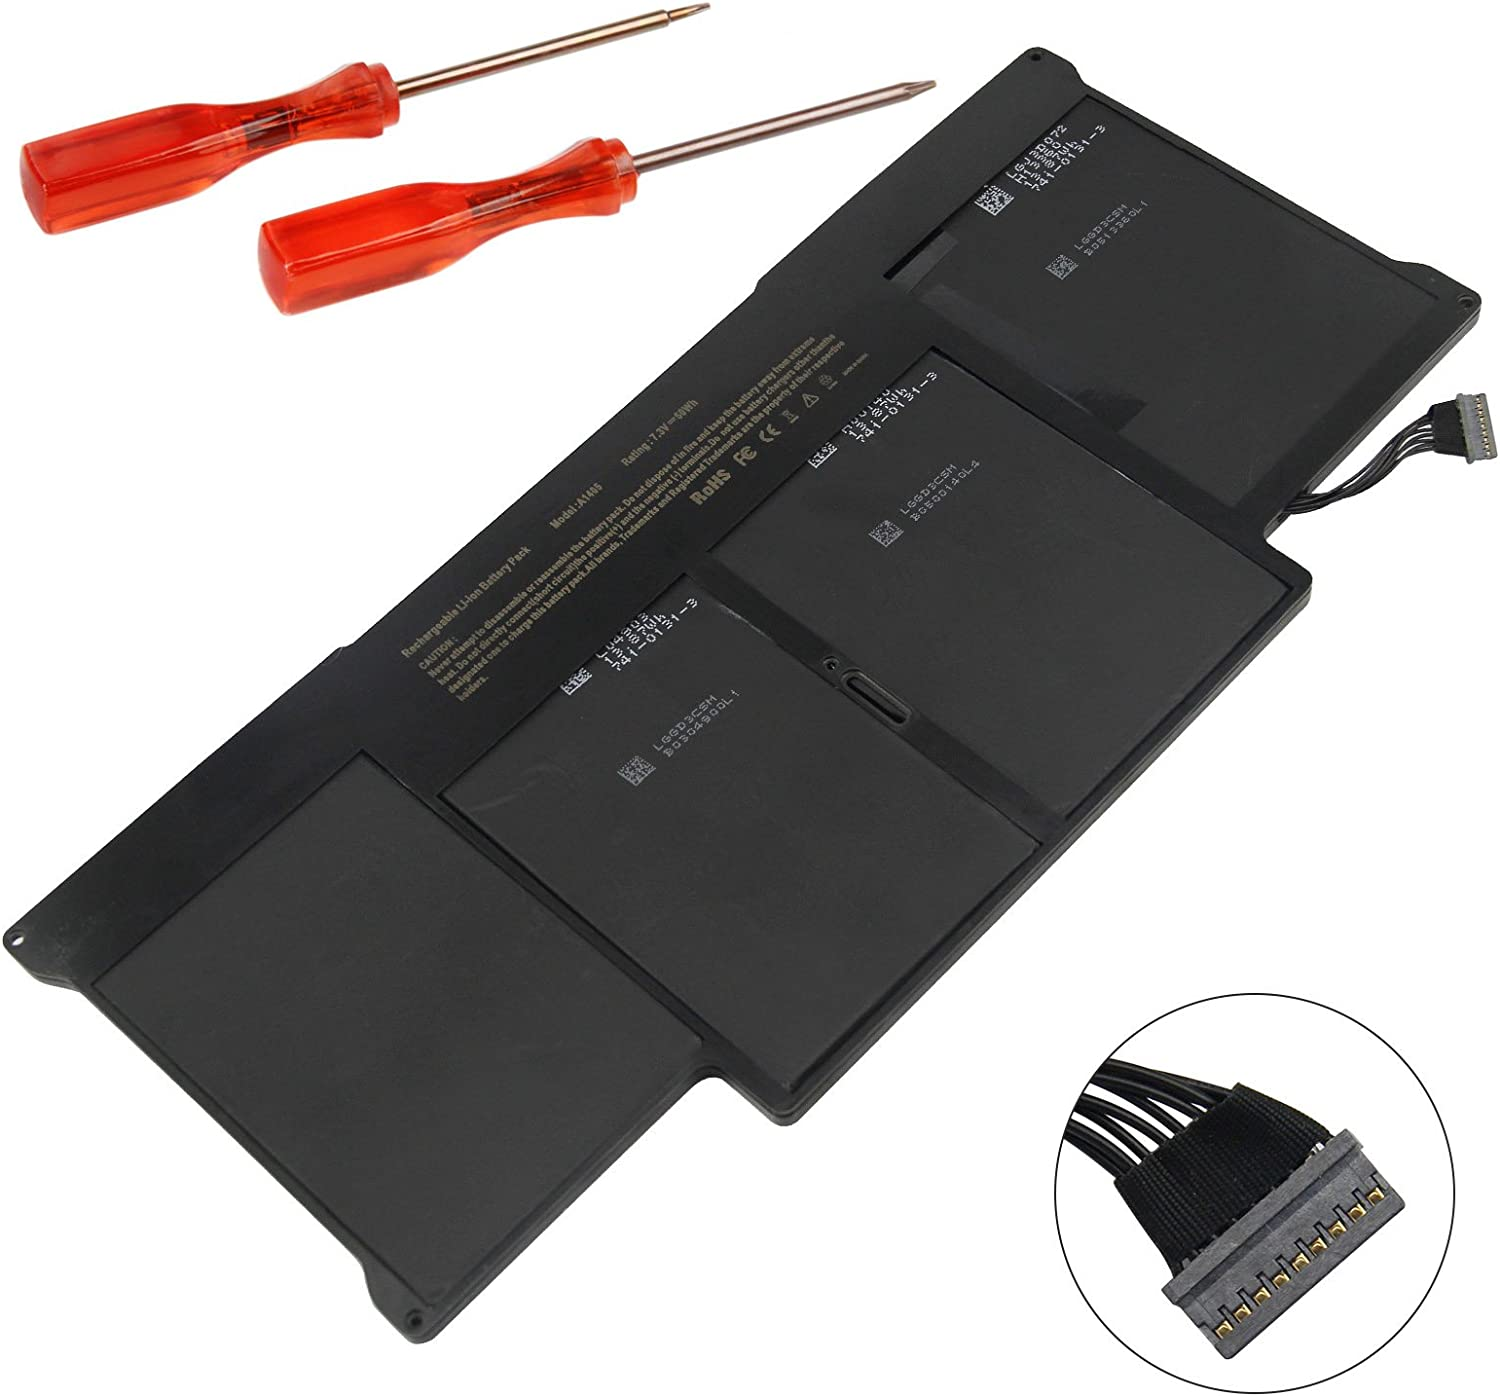 ASUNCELL Notebook Battery for MacBookAir 13 inch A1369 A1377 A1466 MC503LL//A MC965LL//A A1405 A1496 661-5731 Late 2010 Mid 2011 2012 Mid 2013 Early 2014 2015